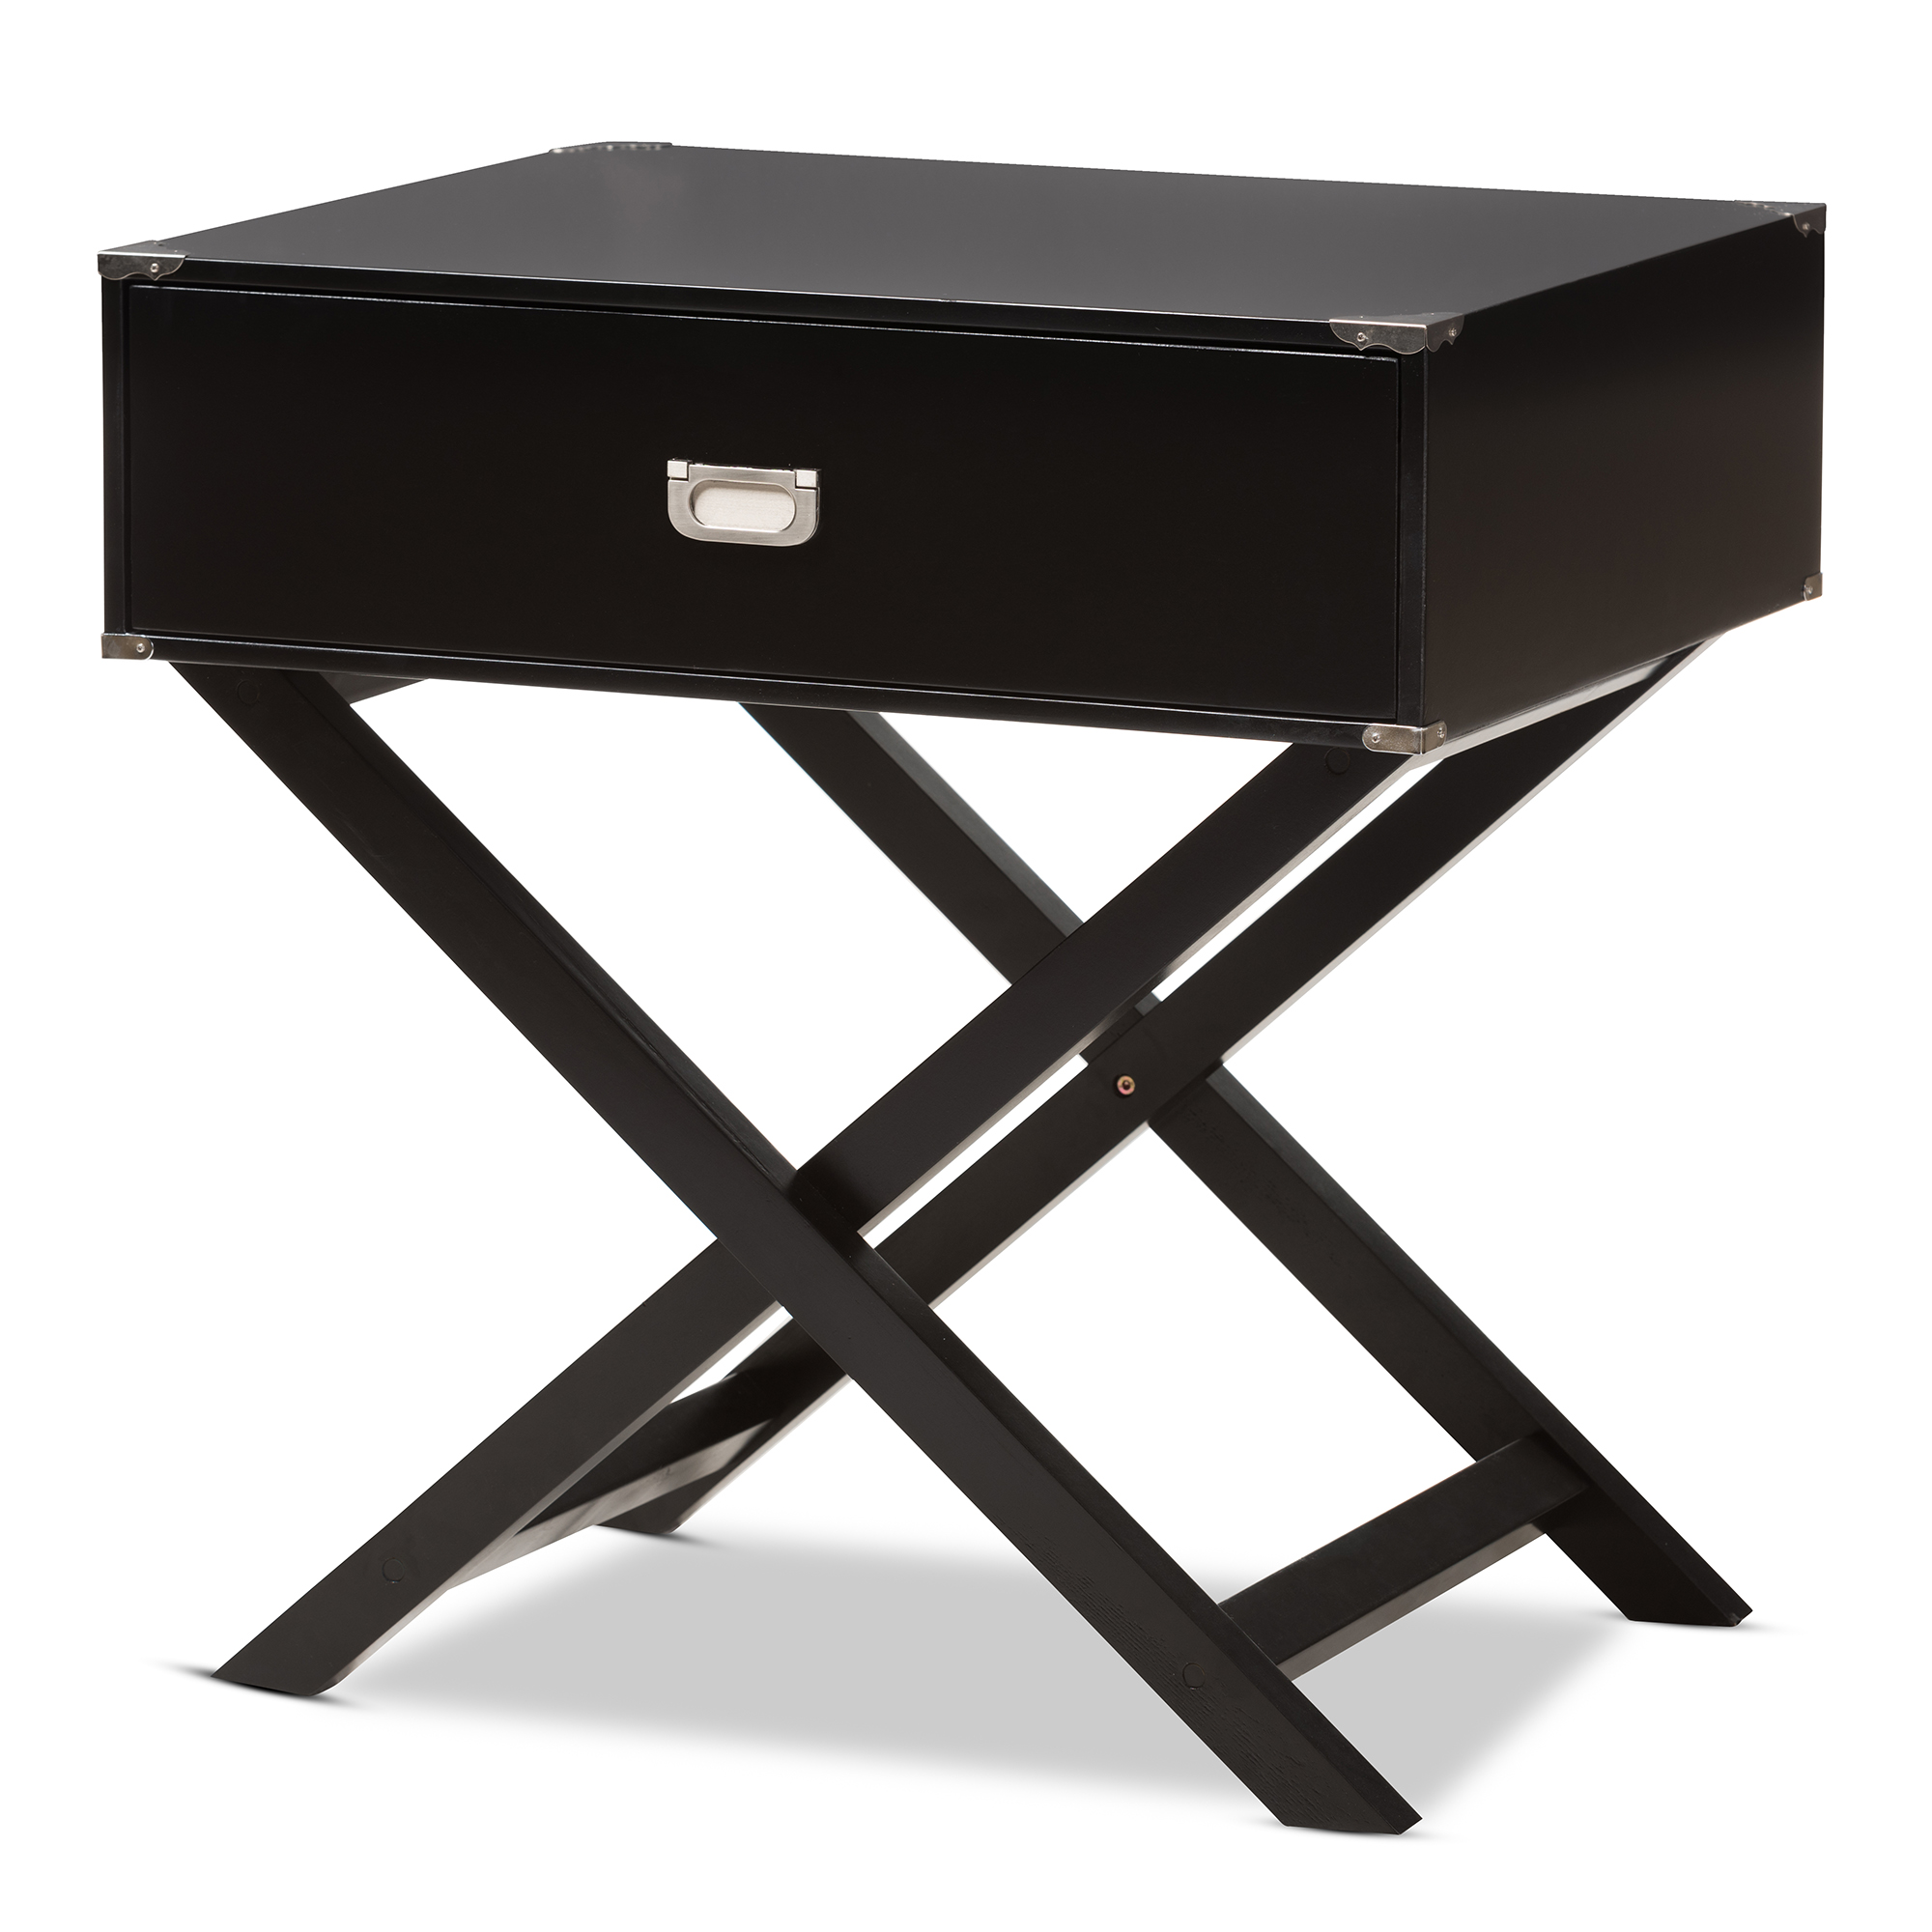 Image of Baxton Studio Curtice Modern And Contemporary 1-Drawer Wooden Bedside Table, Black